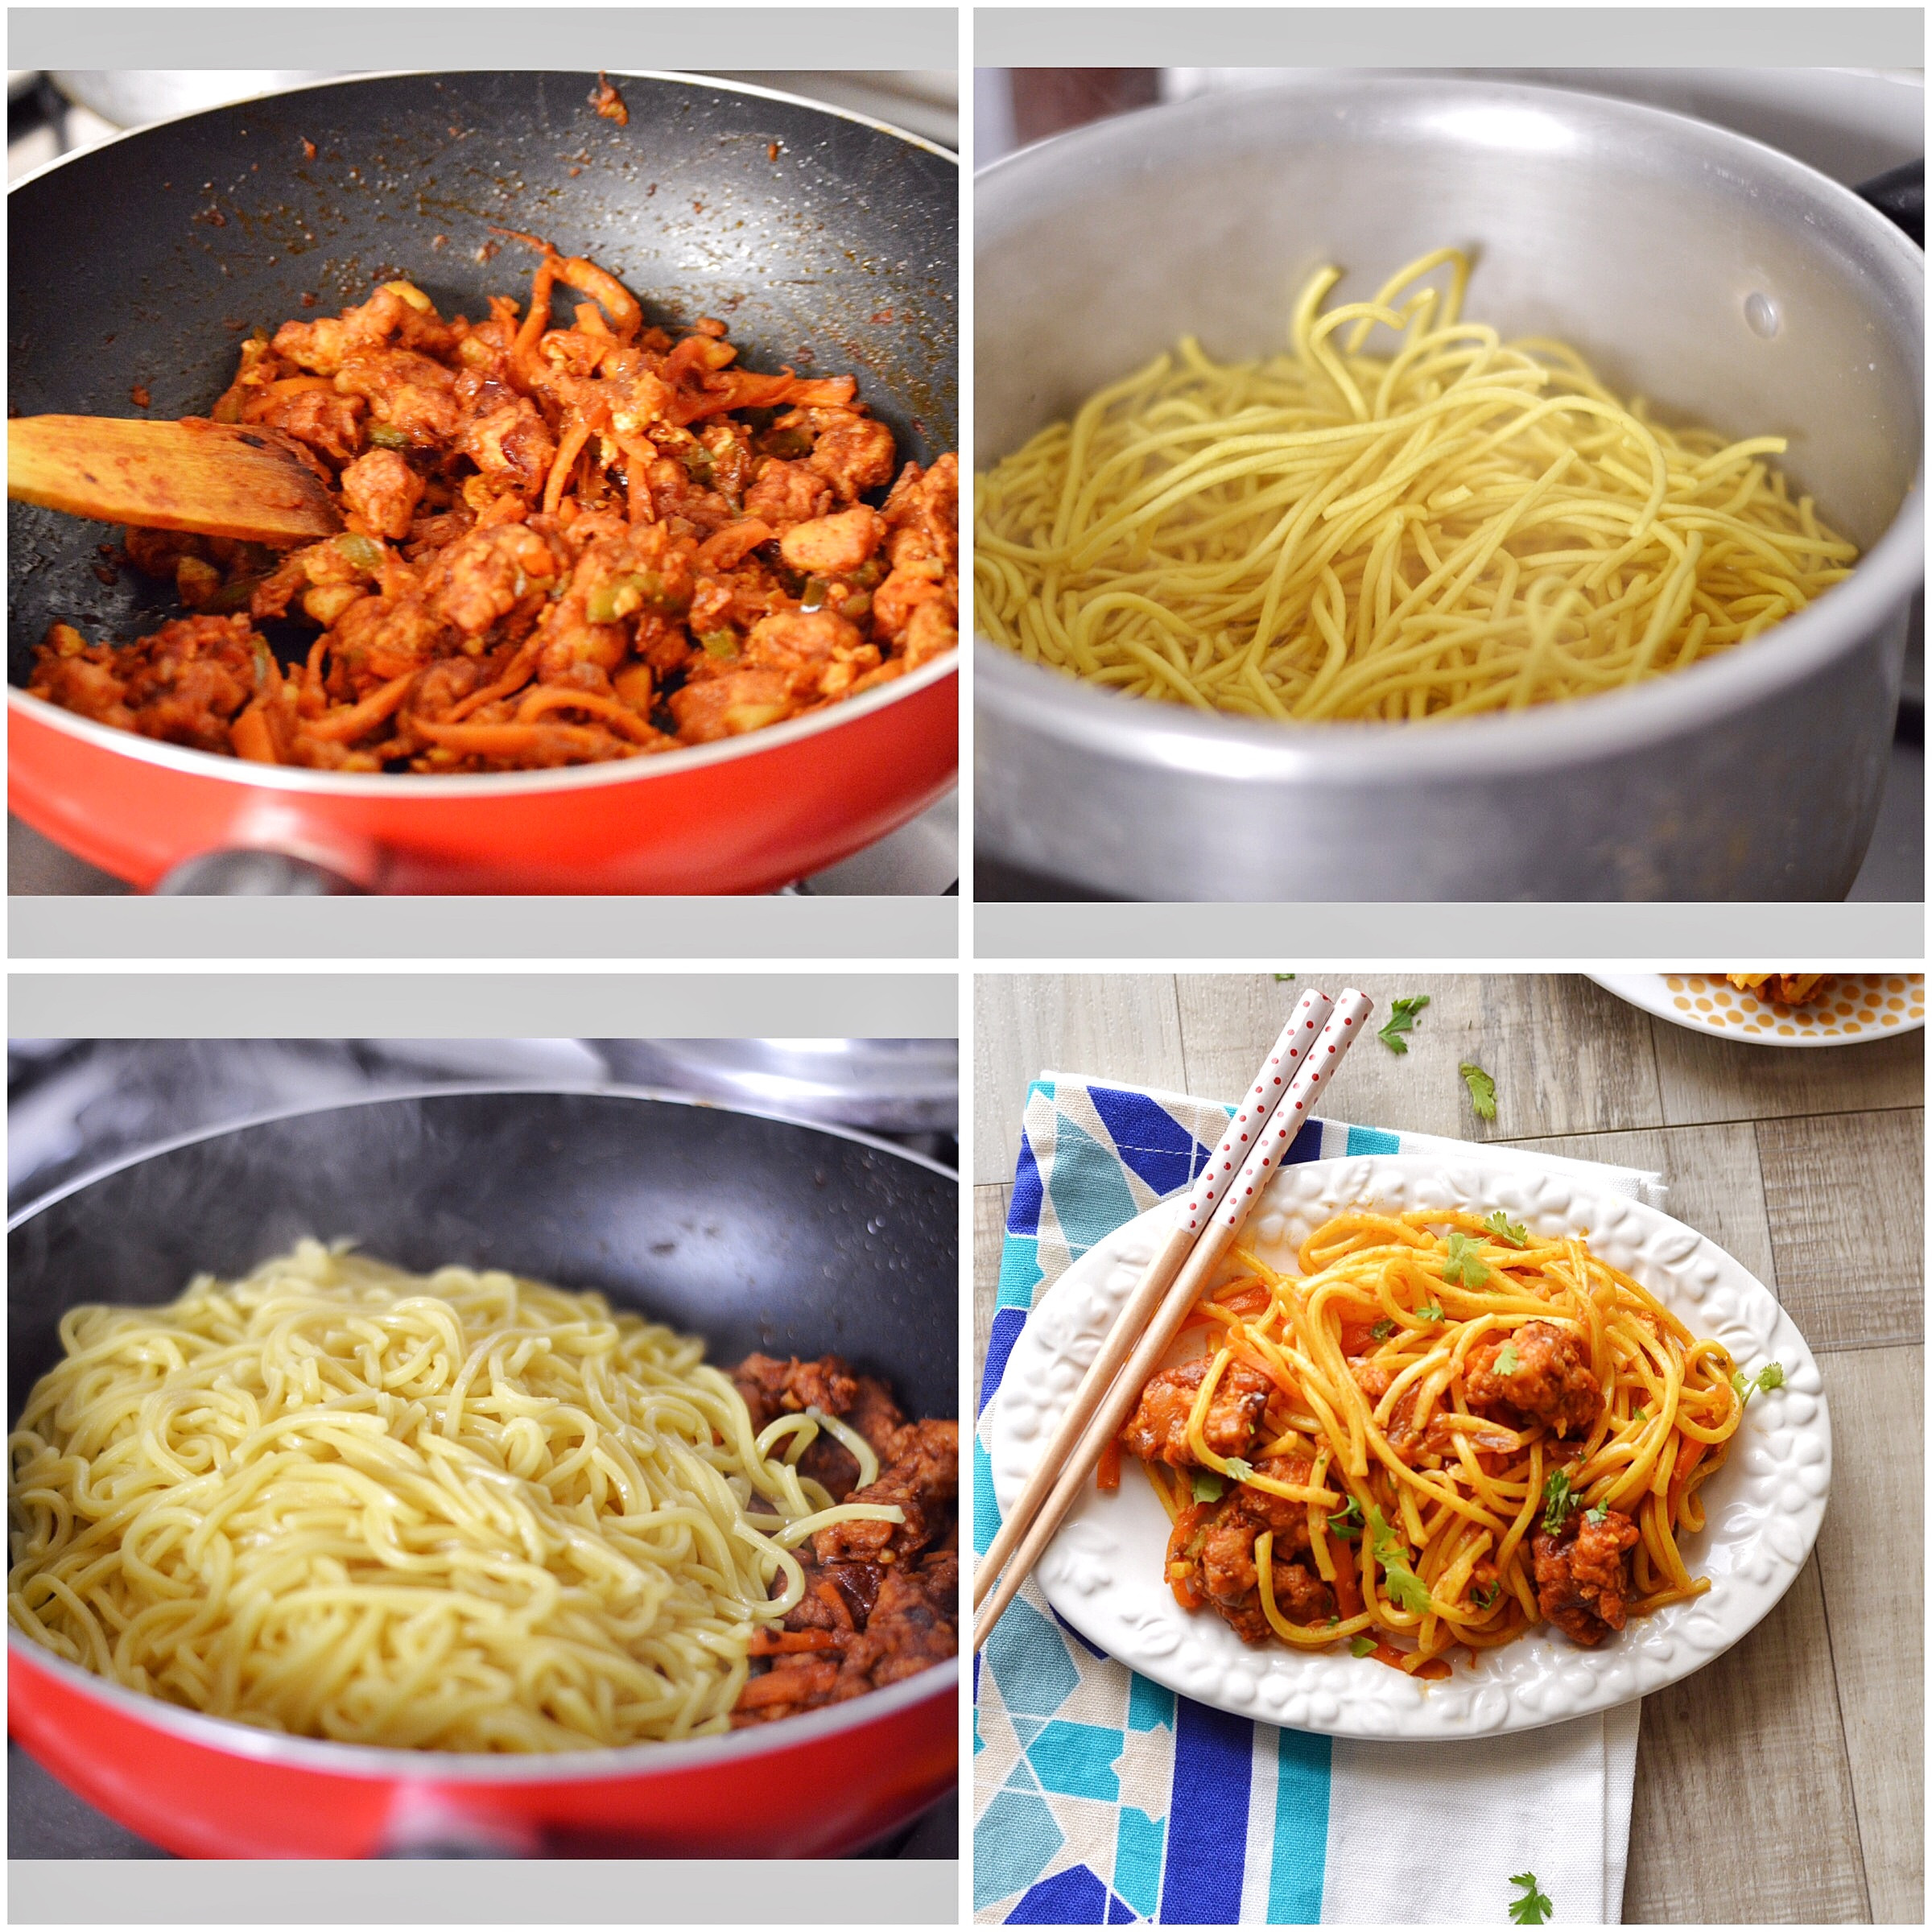 How To Make Chinese Noodles  Spicy Chicken Chinese Noodles Savory&SweetFood